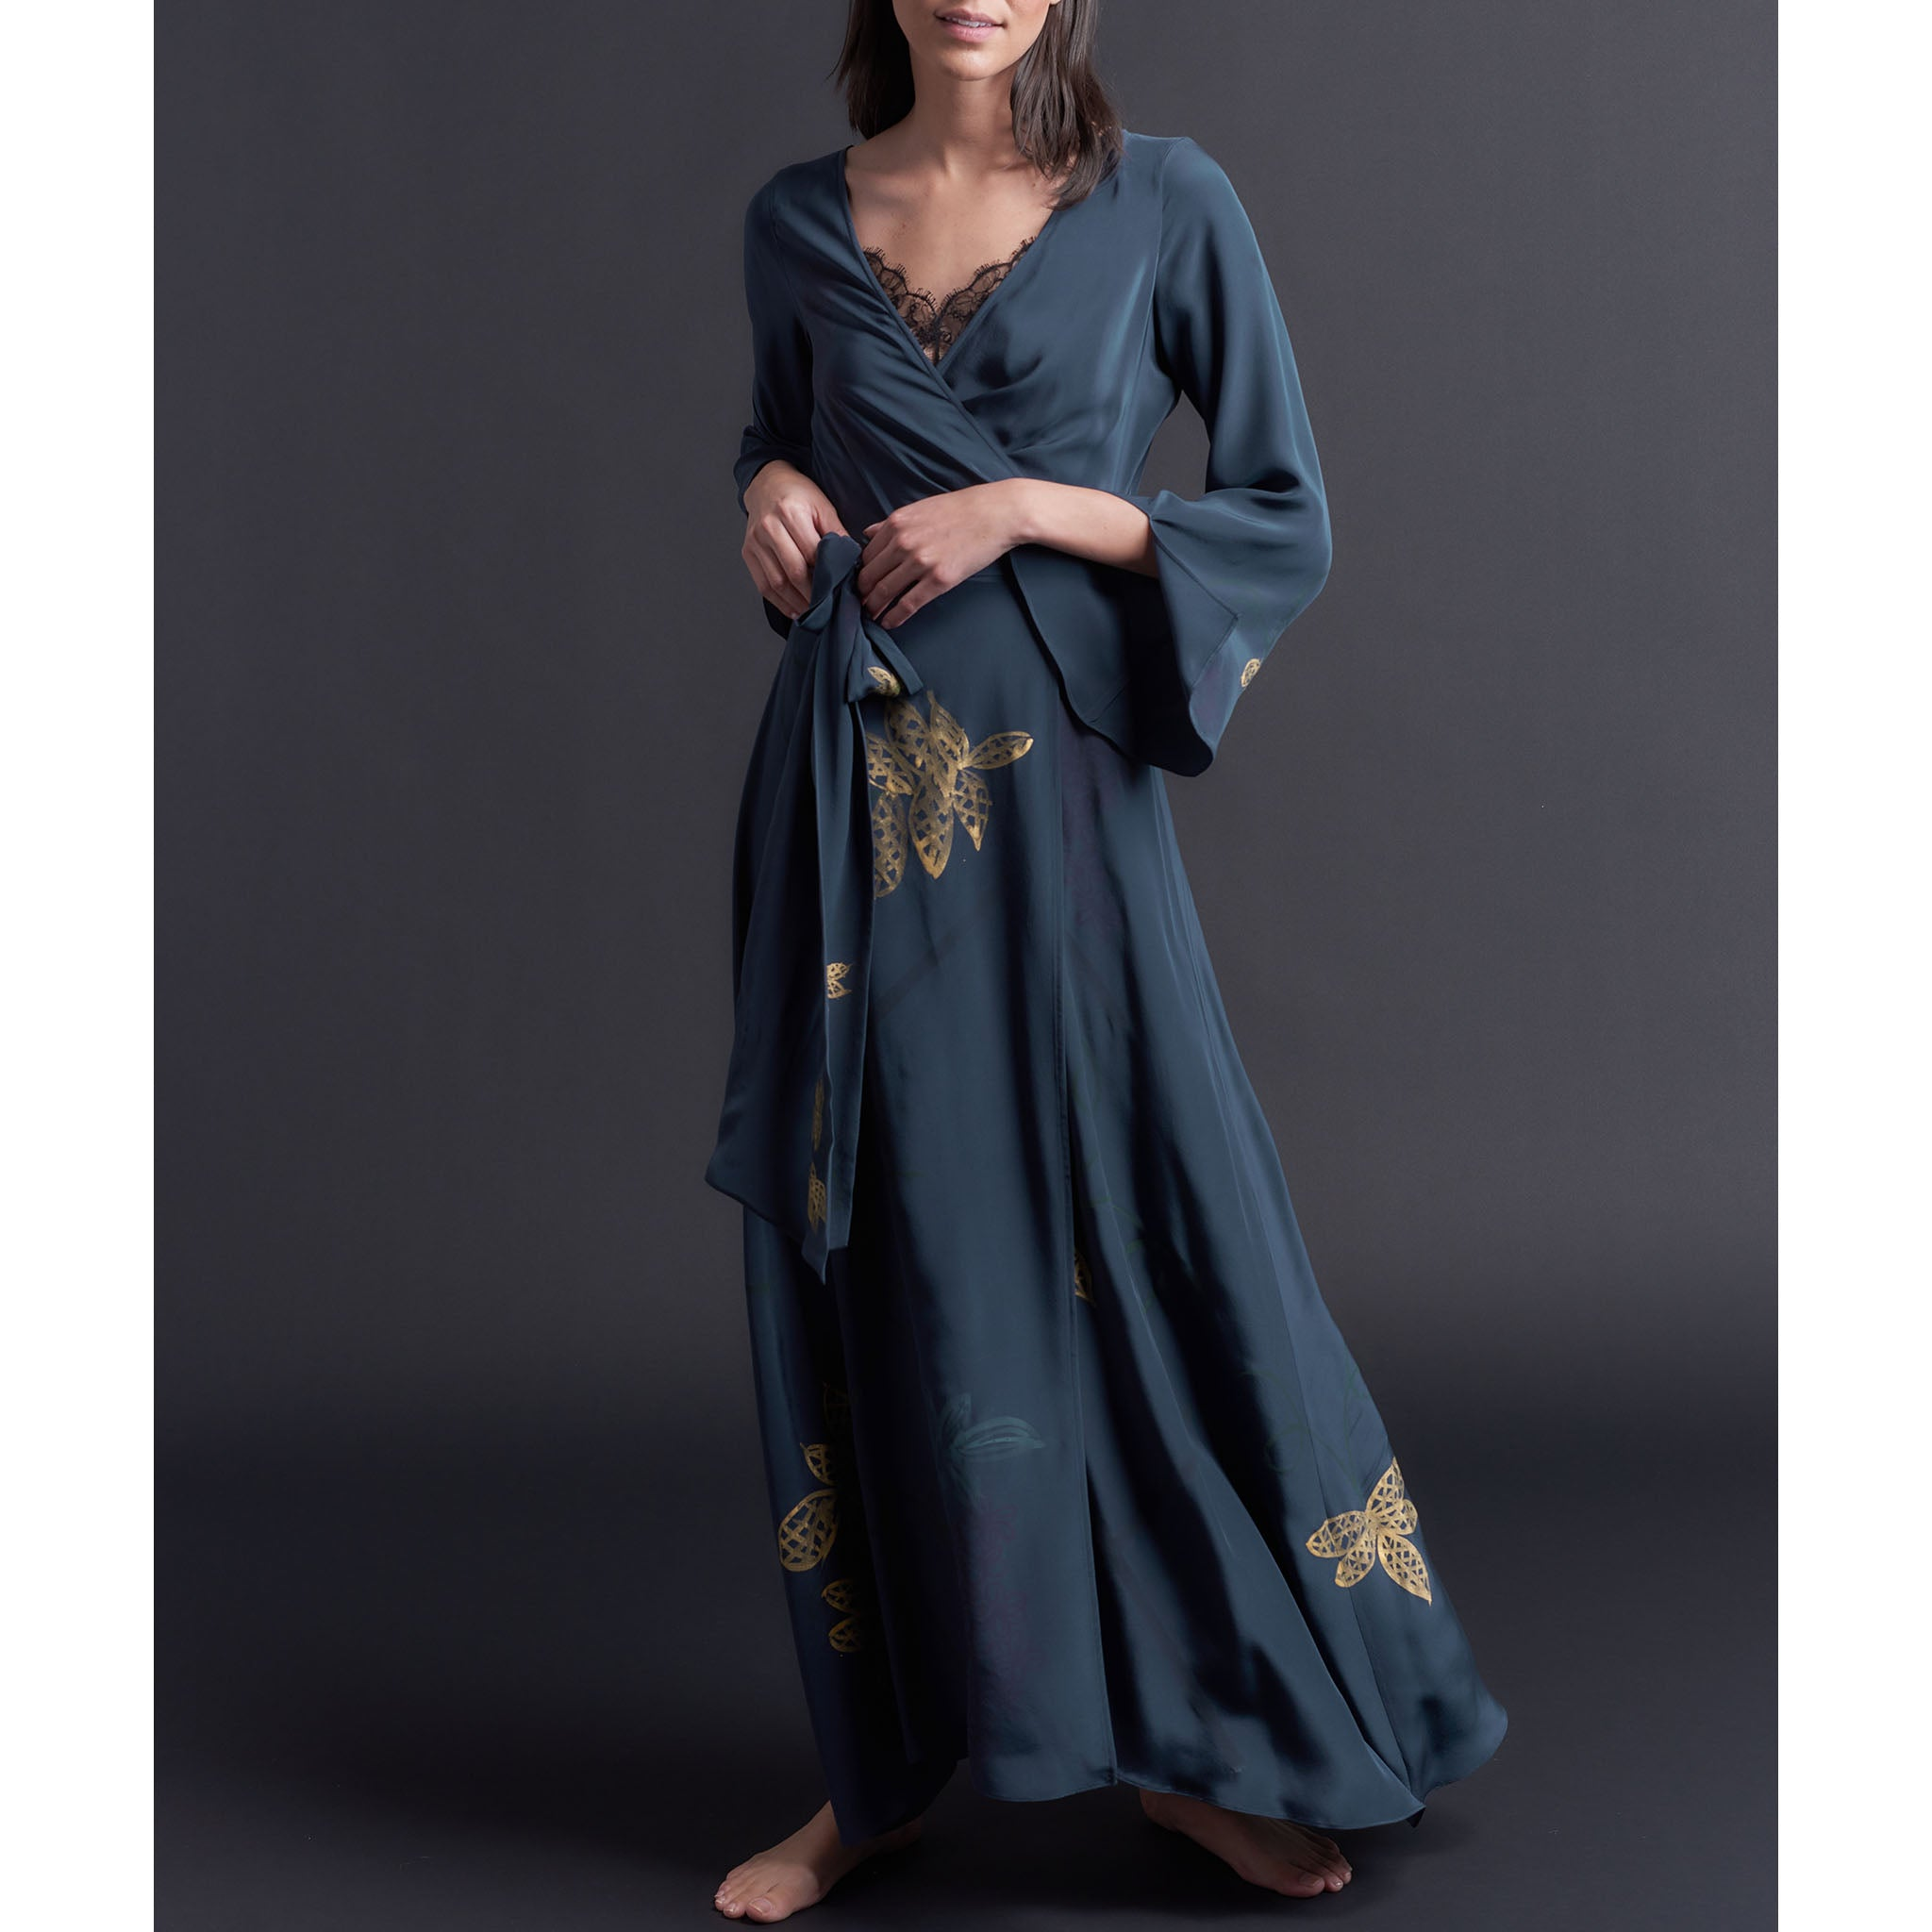 One of a Kind Hand Painted Iris Silk Crepe de Chine Dressing Gown